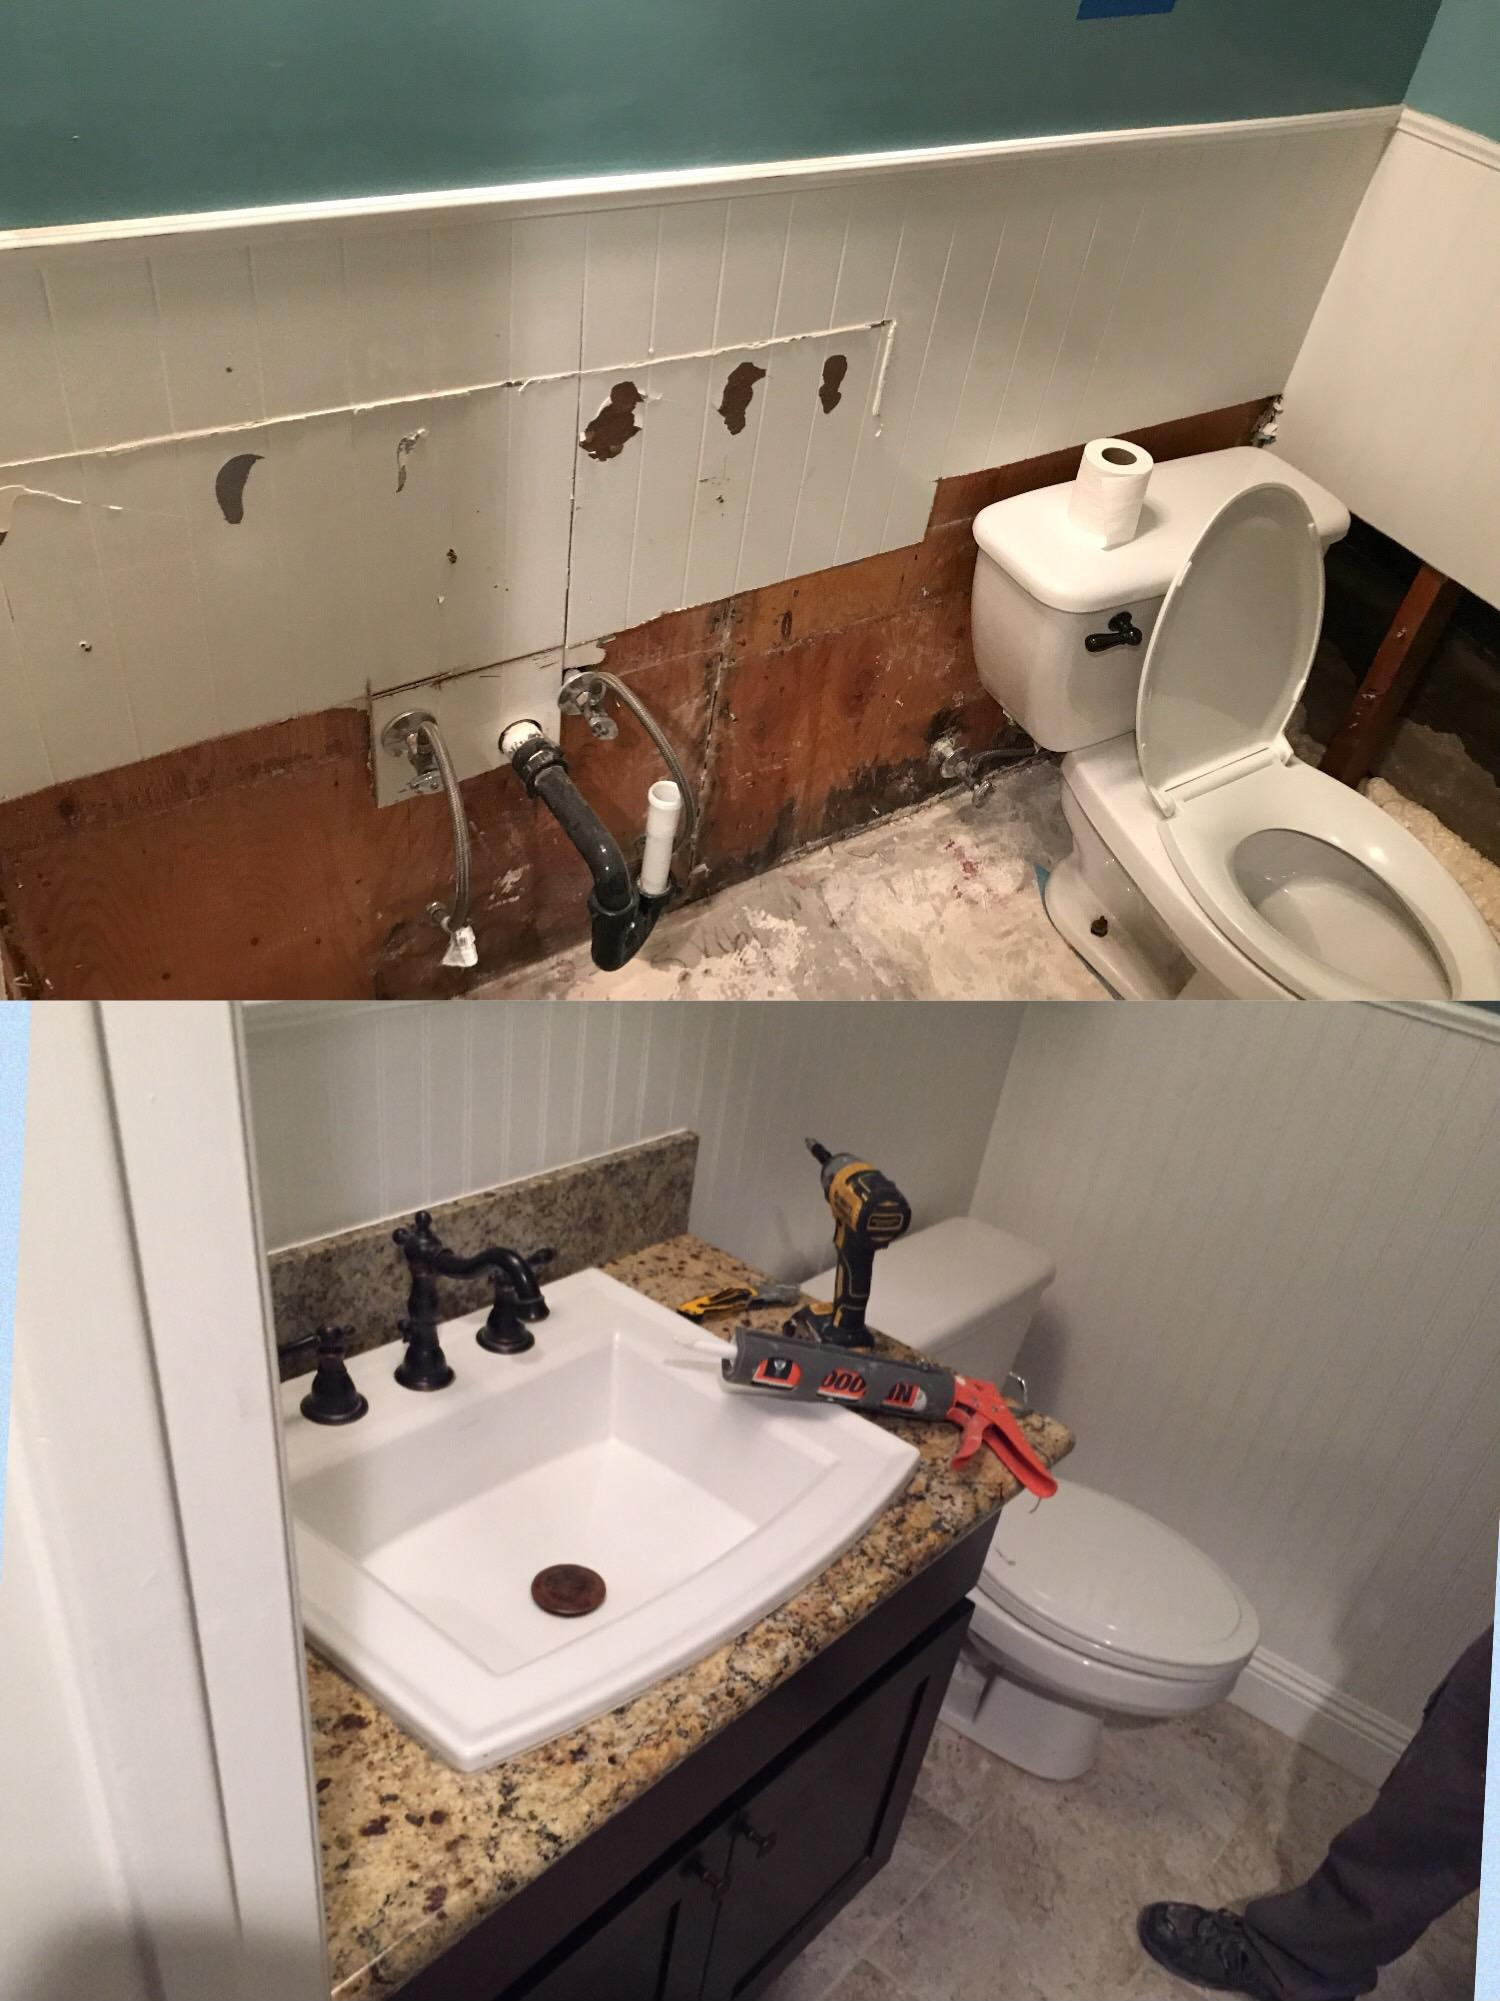 SERVPRO of Costa Mesa Water and Fire Damage Cleanup and Restoration image 16